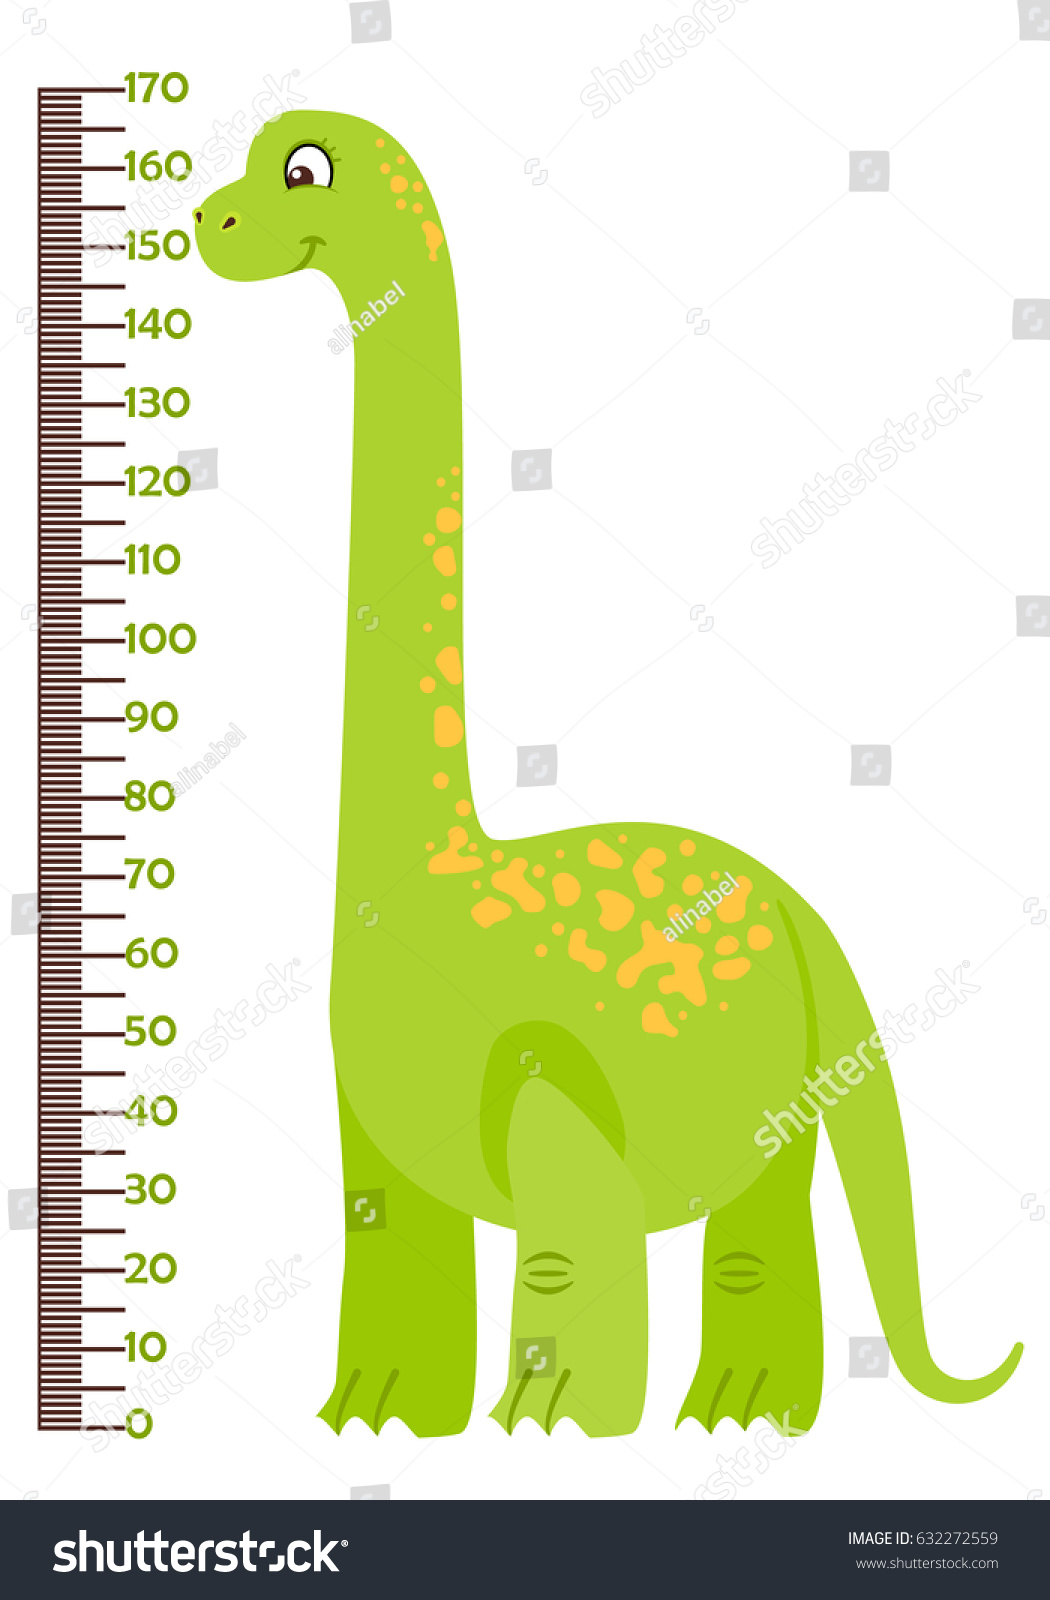 Vector illustration kids height chart cartoon stock vector vector illustration of kids height chart with cartoon dinosaur meter wall or baby scale of nvjuhfo Gallery